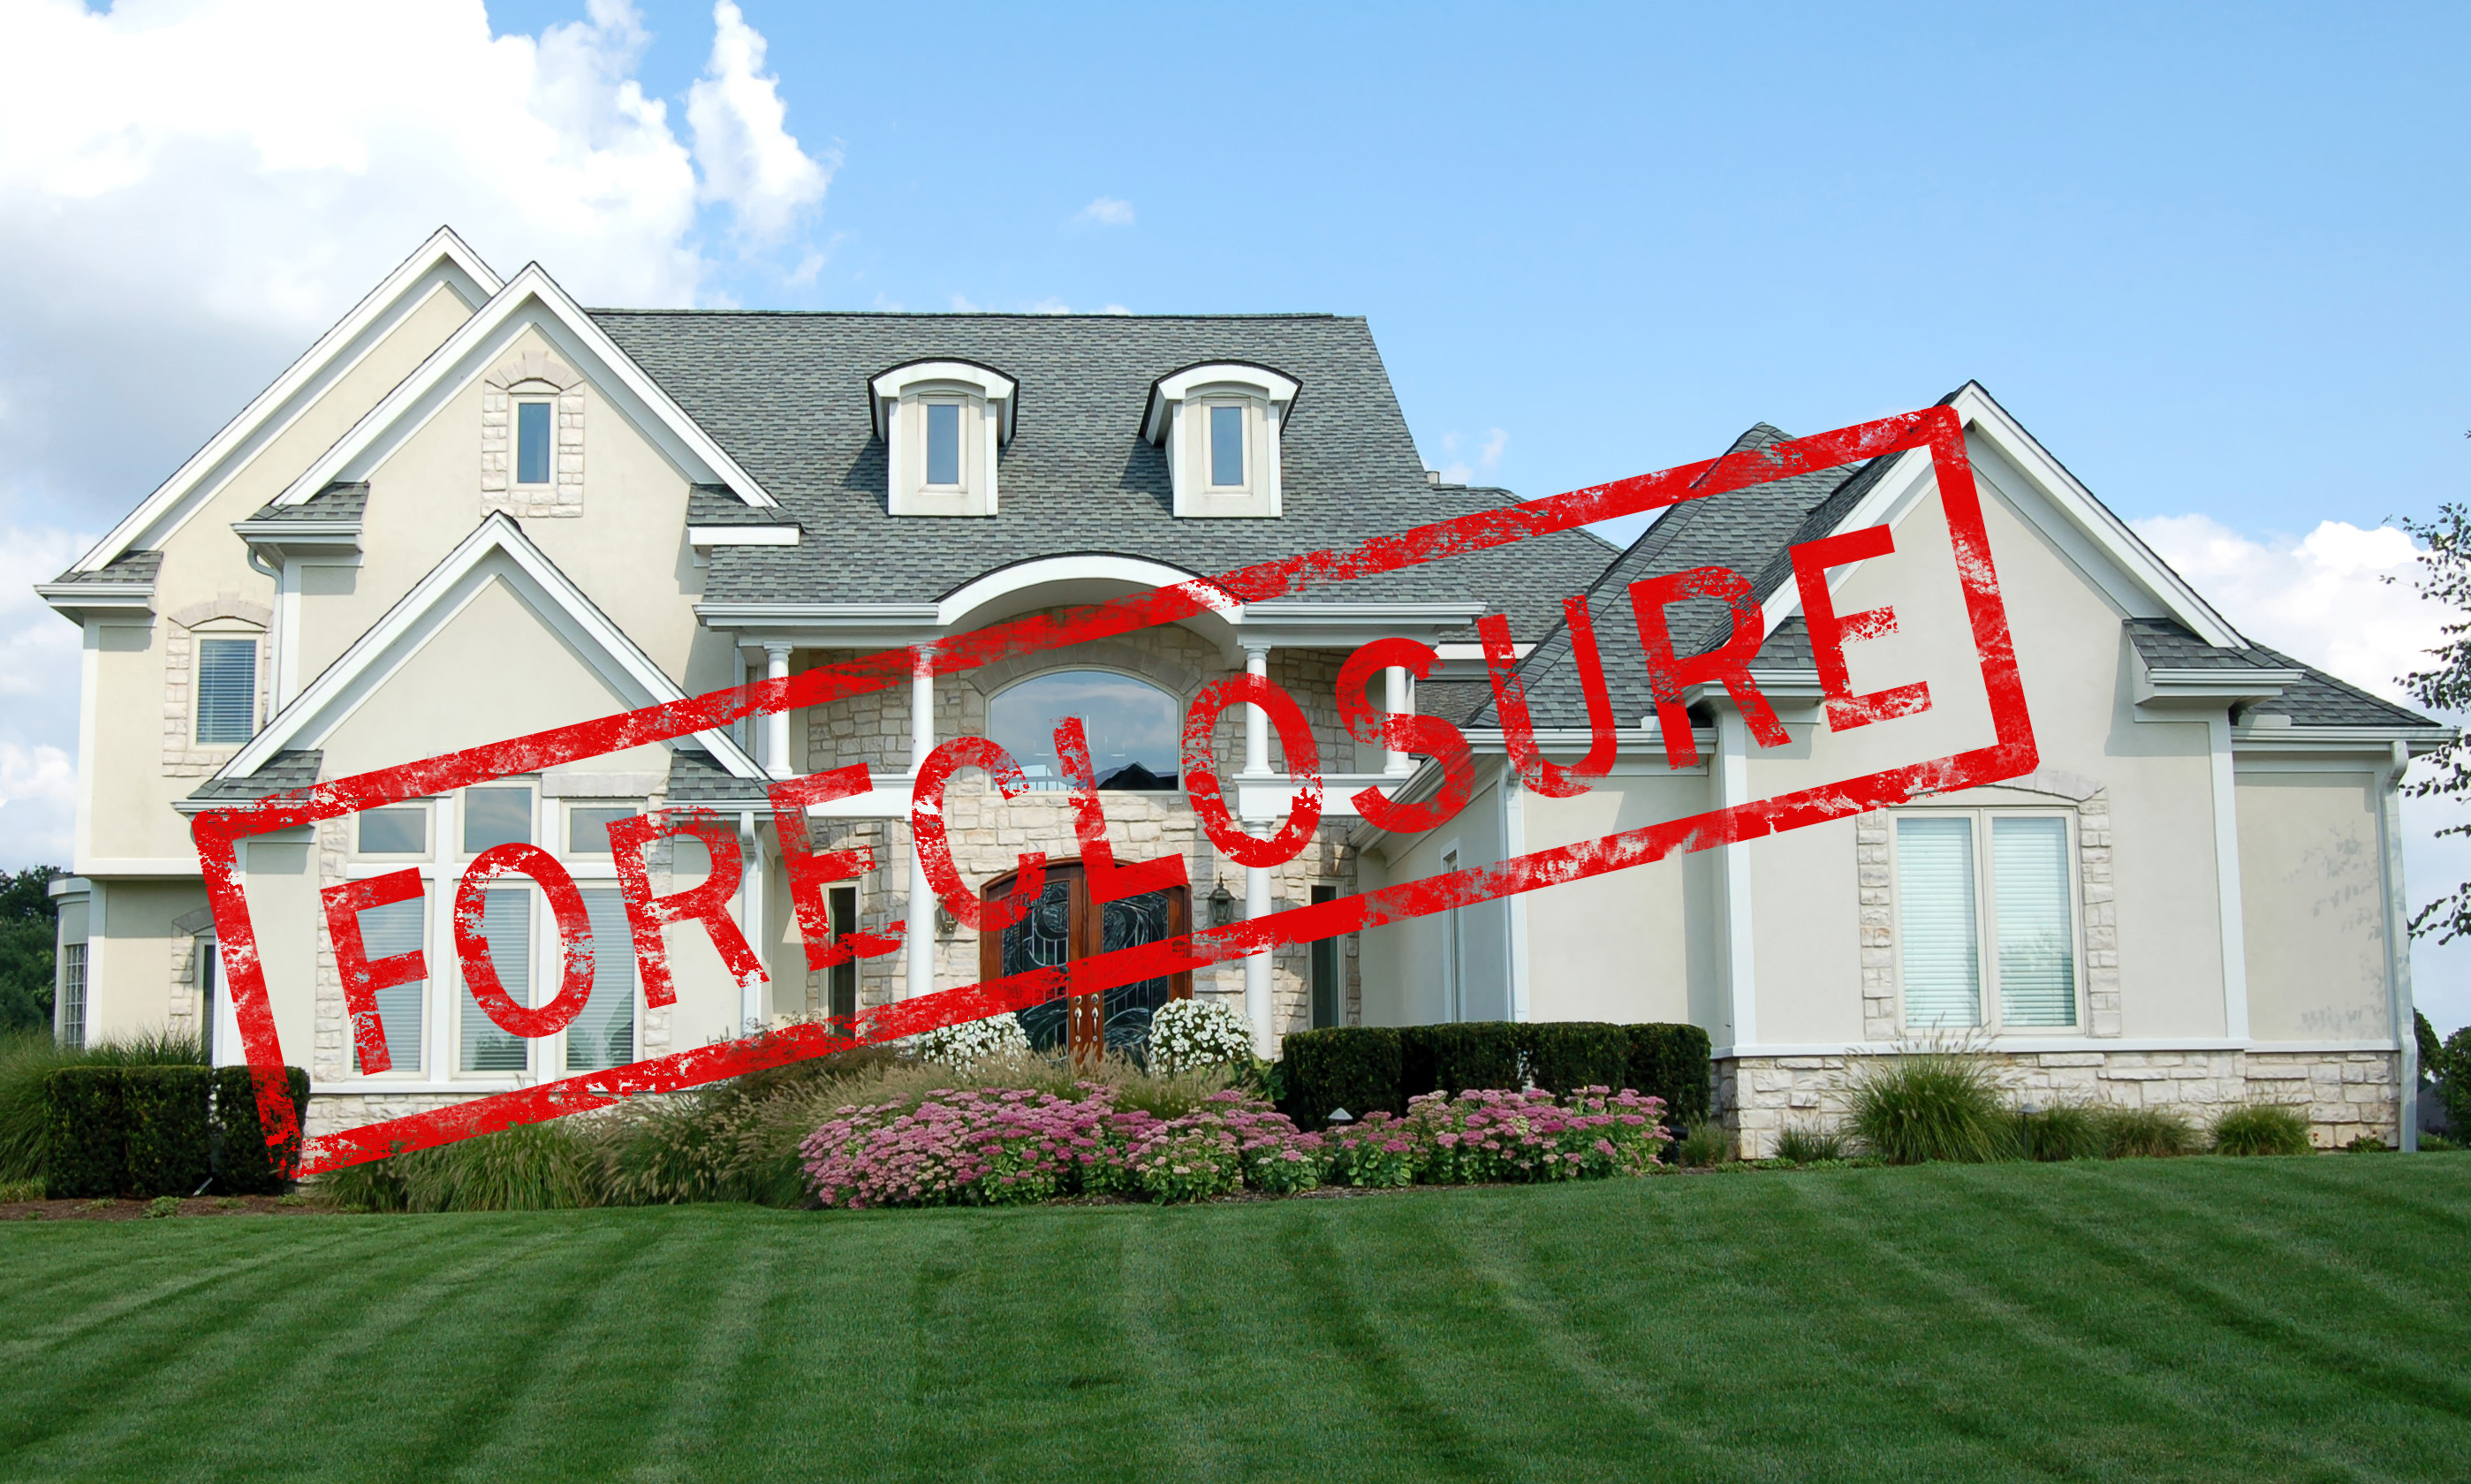 Call Appraisal-One when you need appraisals on Orange foreclosures